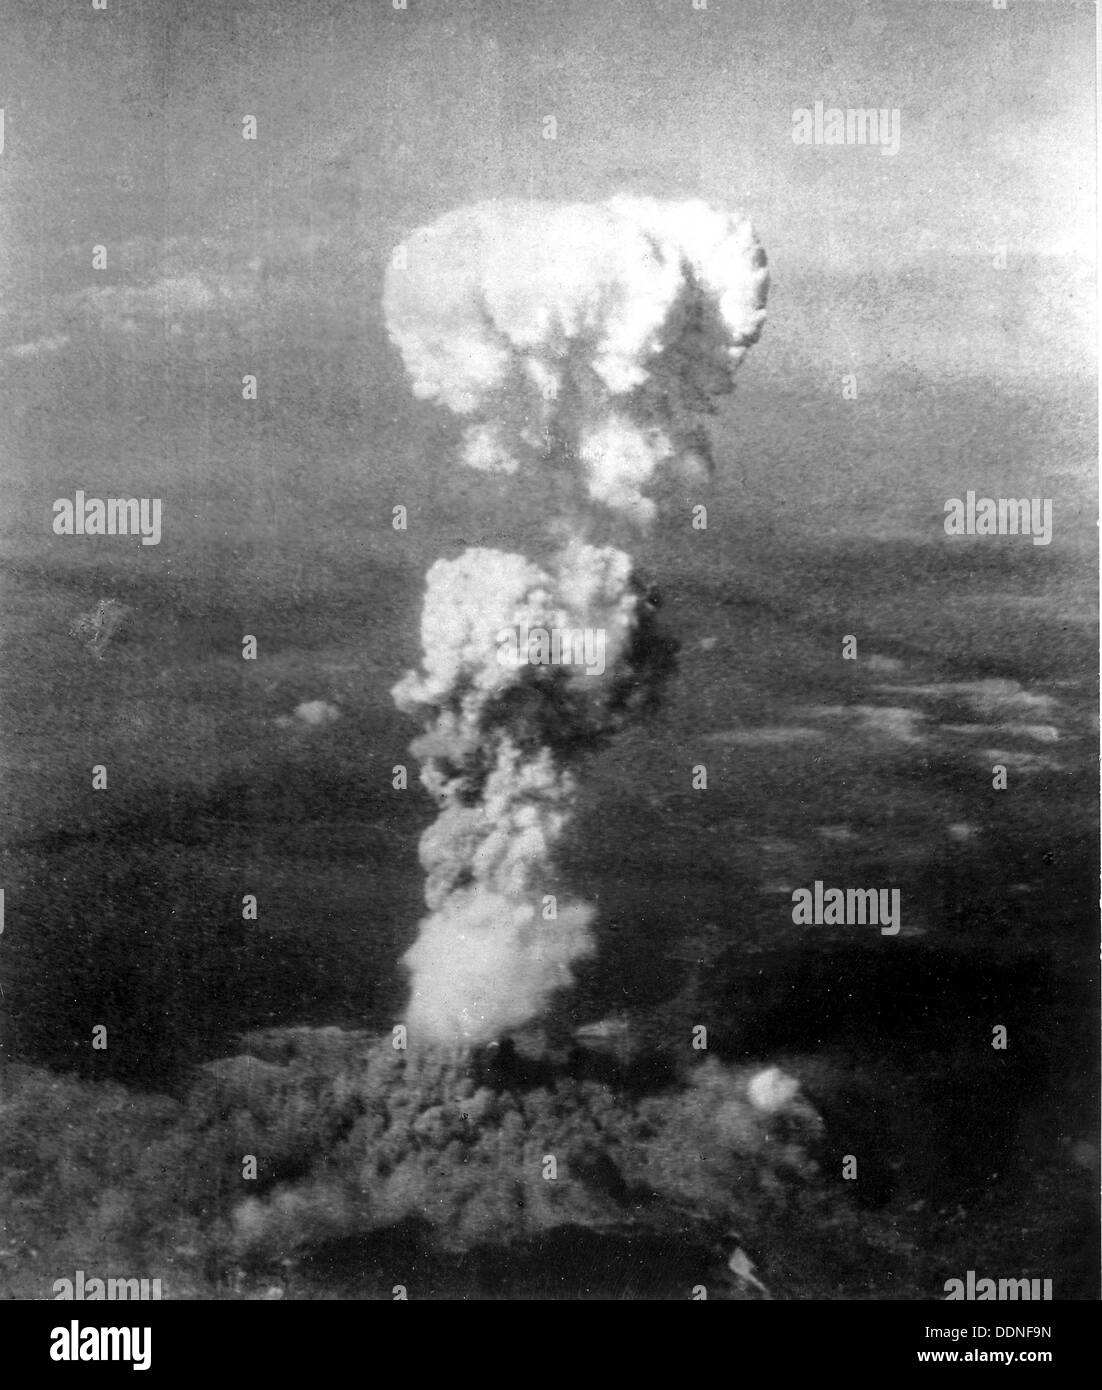 Hiroshima Atomic bomb explosion and cloud, Japan - Stock Image